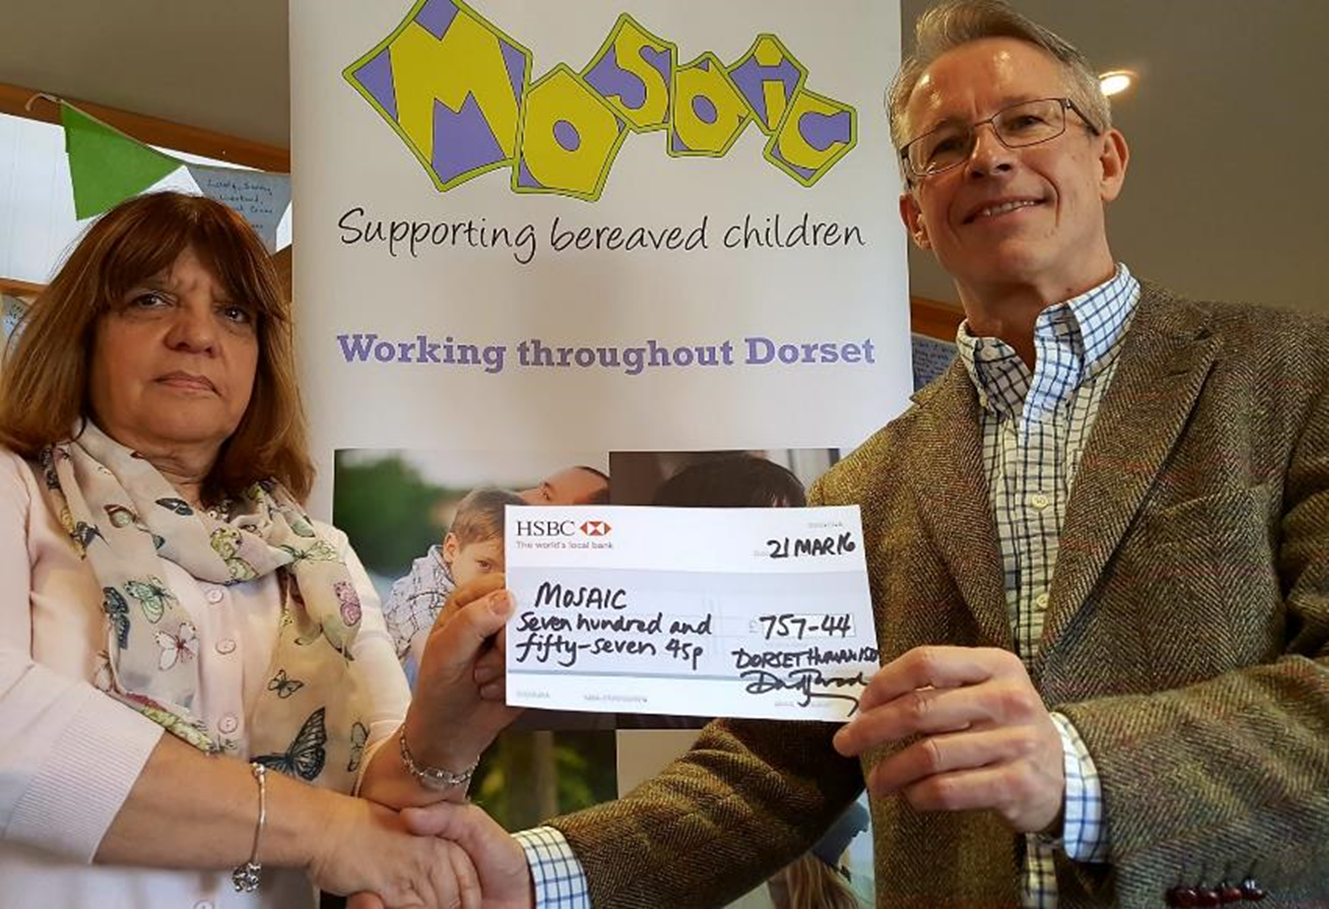 David Warden presenting a cheque to the Mosaic charity for bereaved children in Dorset.